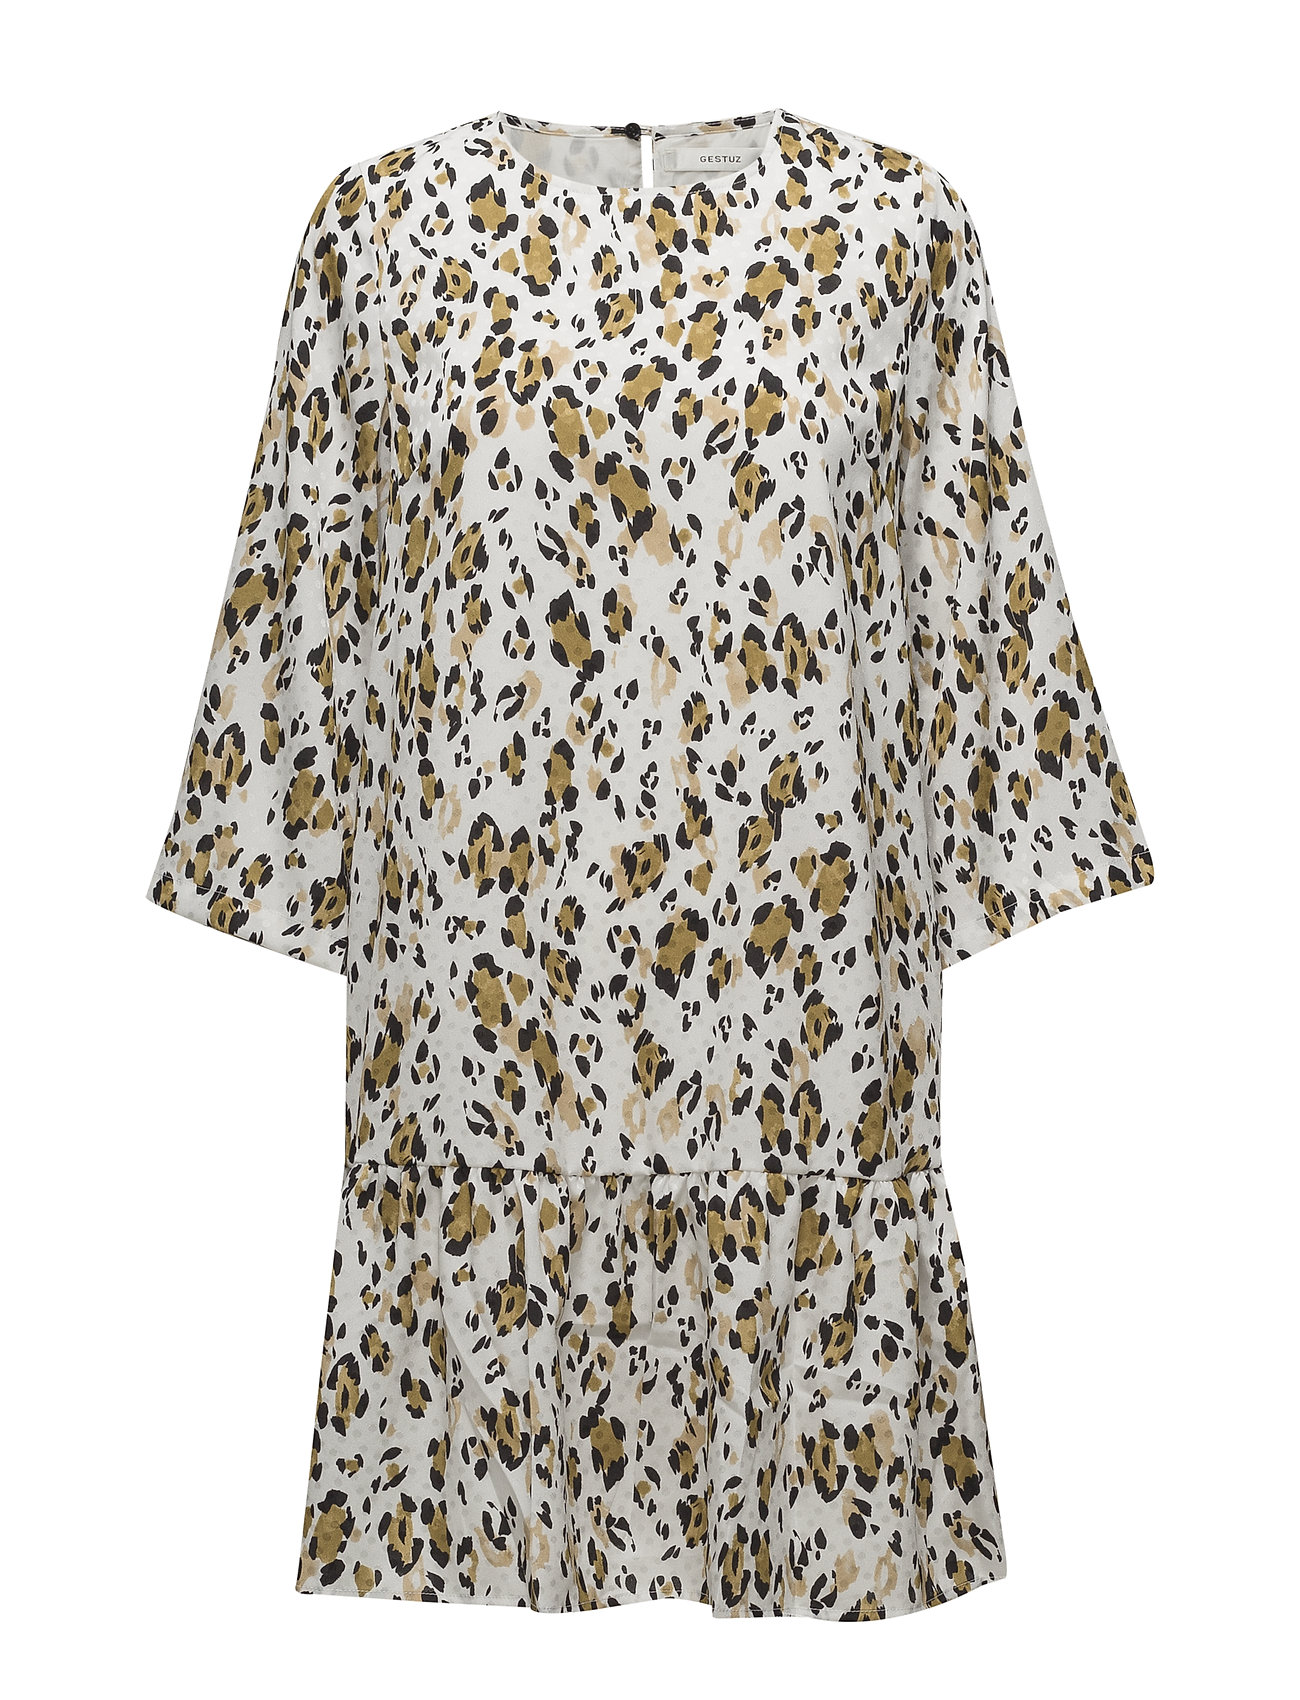 Ls Ls Leopa LeopardGestuz Ma18golden Leopa Leopa Ls Dress LeopardGestuz Dress Ma18golden yO0w8vmNn